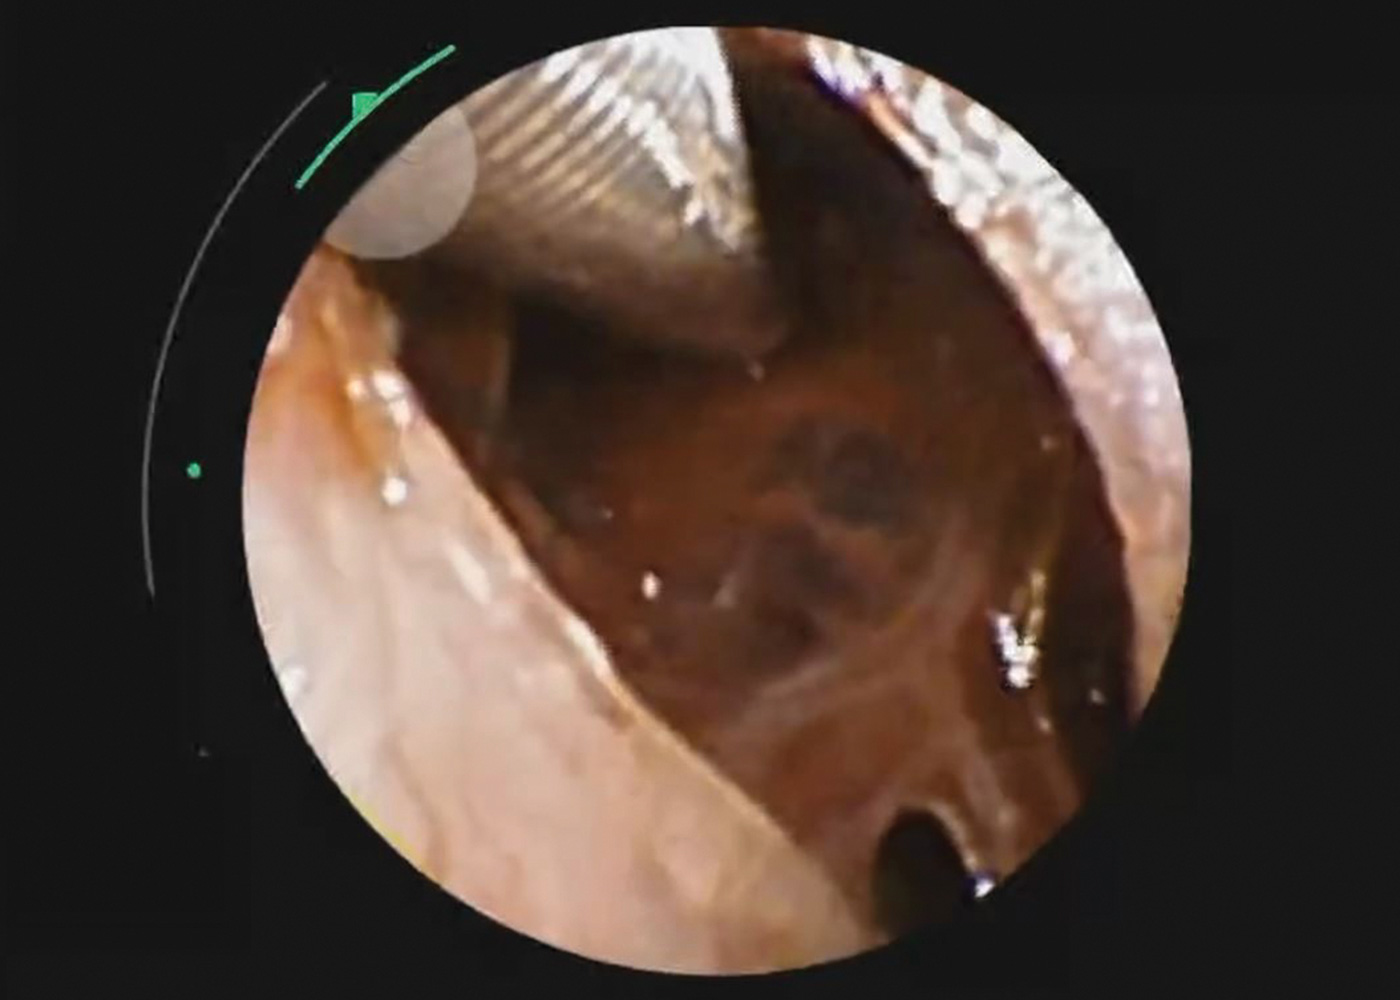 Fig 6. Camera view with REBUS prob inserted directly into nodule